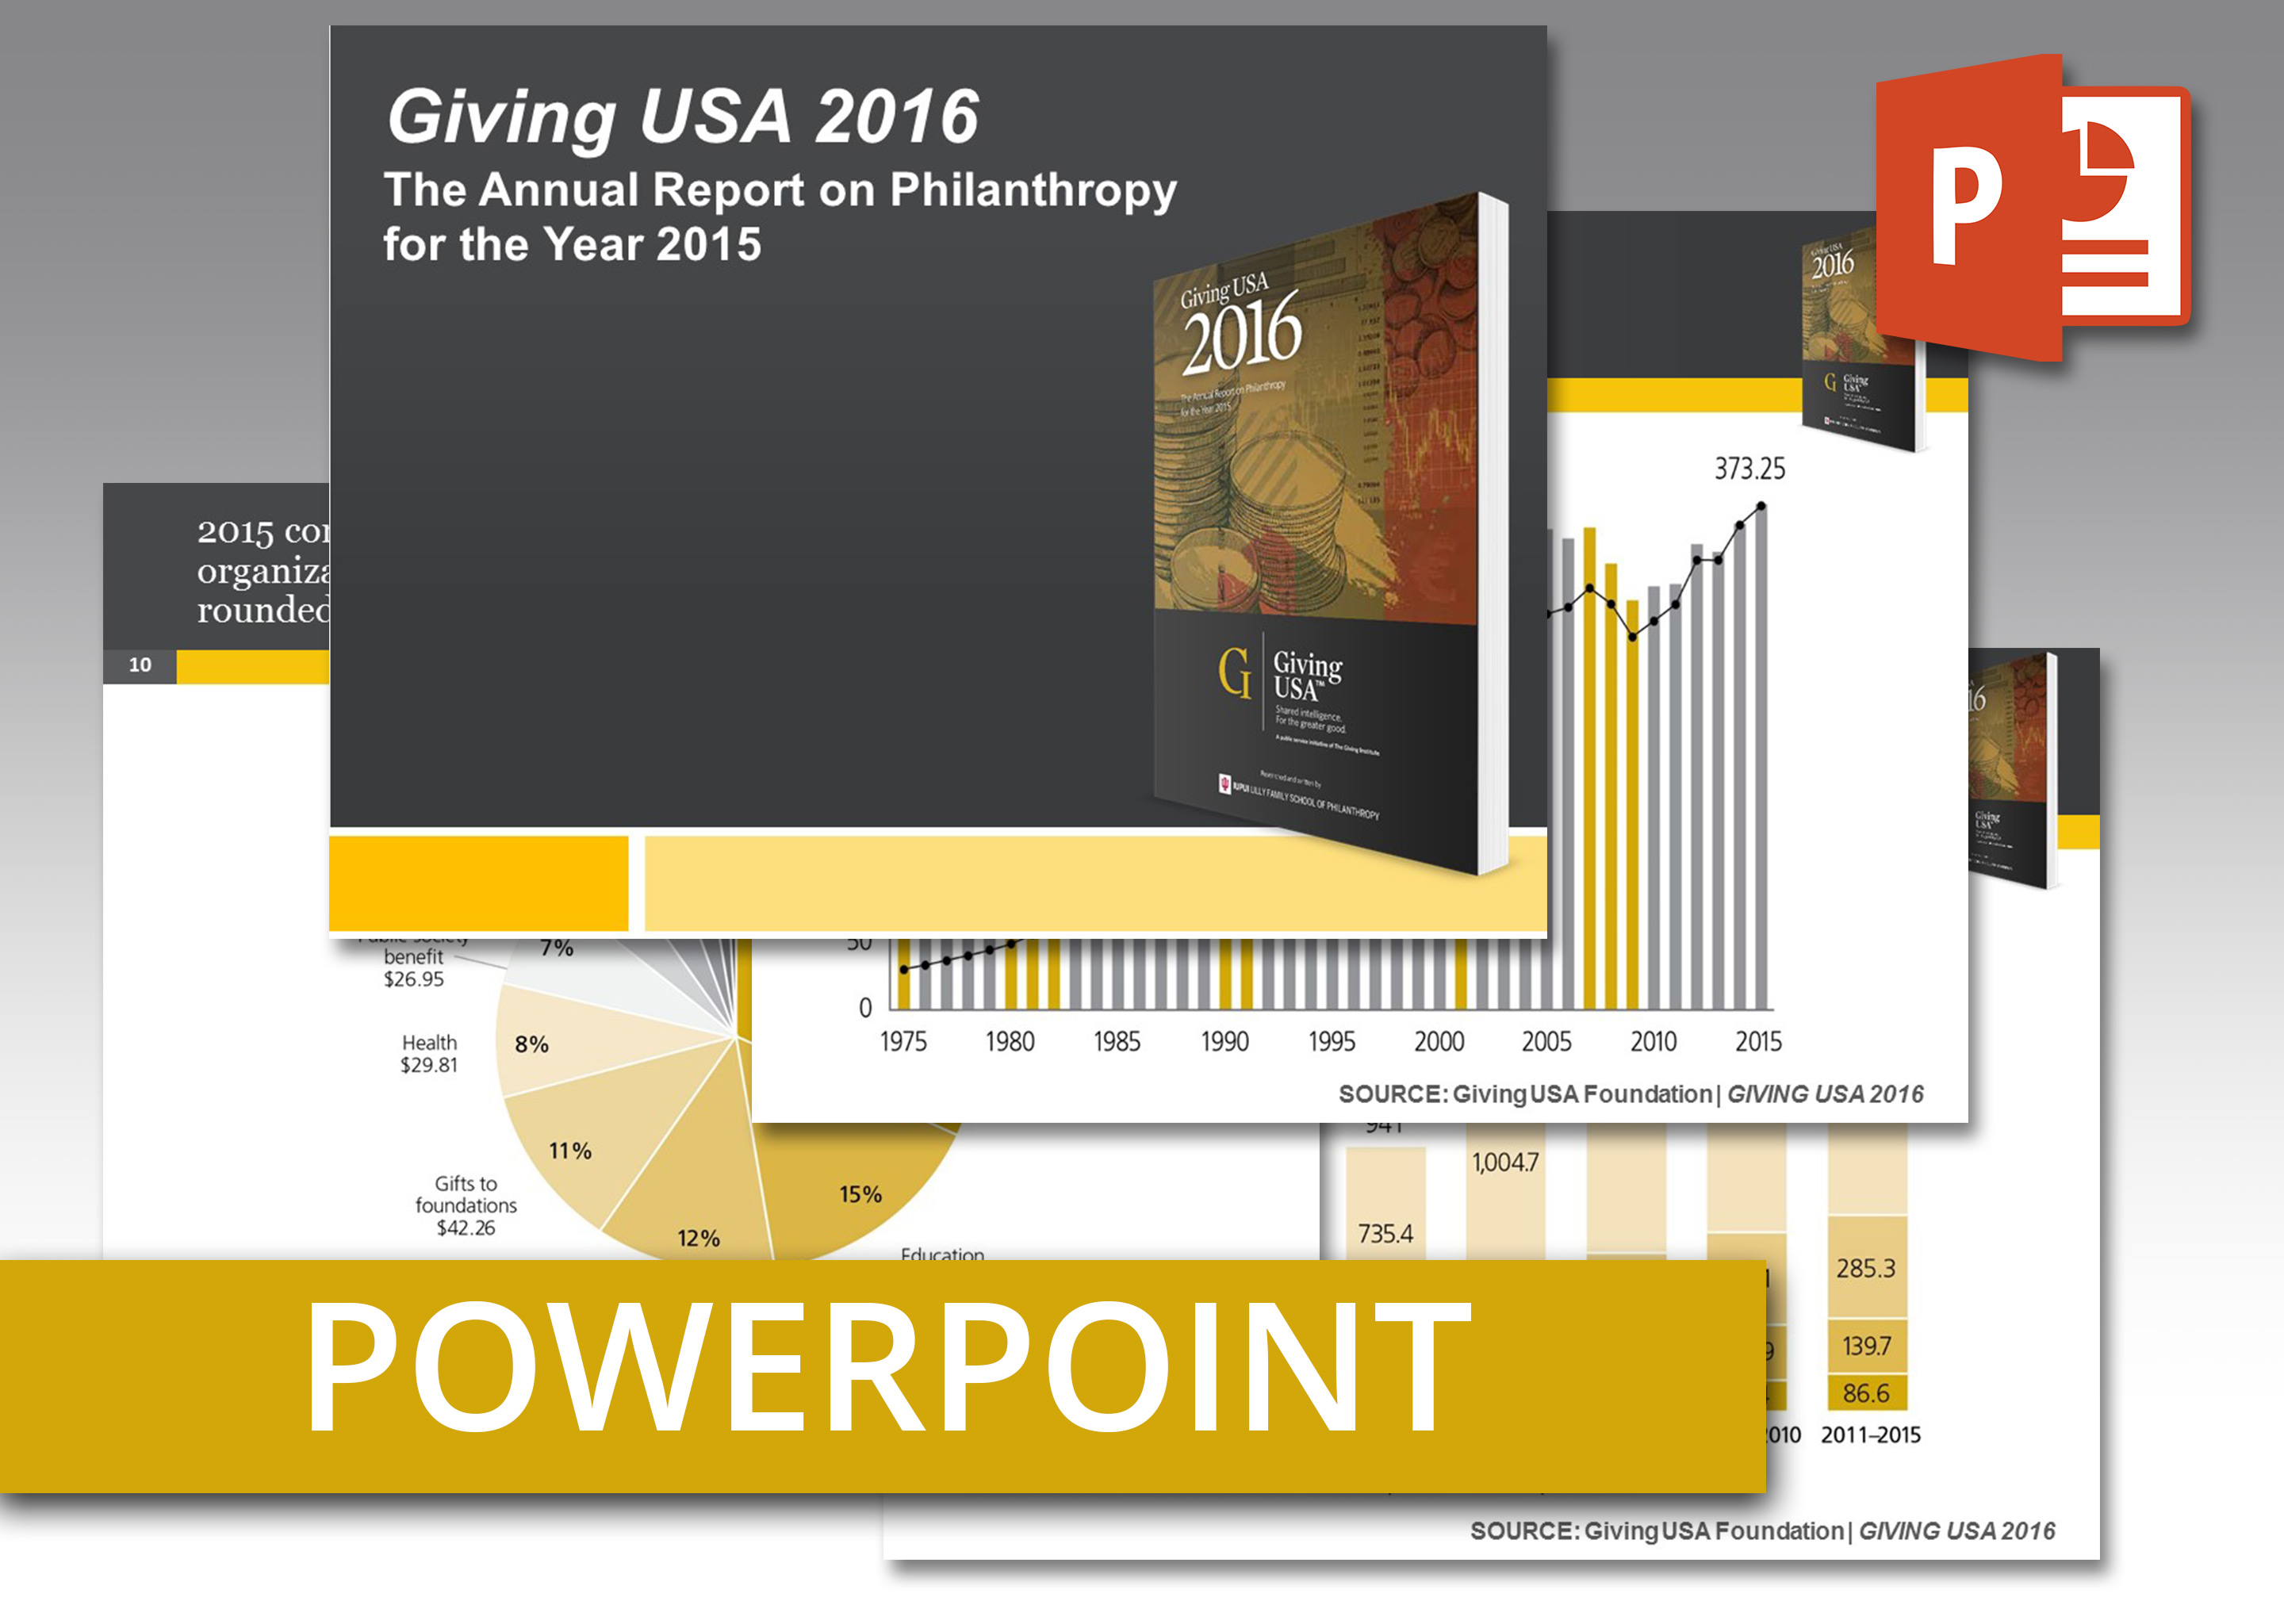 Coolmathgamesus  Inspiring Giving Usa  Powerpoint An Easytouse Presentation Of Report  With Foxy Giving Usa  Powerpoint An Easytouse Presentation Of Report Findings Including Talking Points With Agreeable Mother Teresa For Kids Powerpoint Also Powerpoint Preaching In Addition Animated Templates For Powerpoint  Free Download And Playing Mp In Powerpoint As Well As Convert Pdf File Powerpoint Additionally Learning Theories Powerpoint From Givingusaorg With Coolmathgamesus  Foxy Giving Usa  Powerpoint An Easytouse Presentation Of Report  With Agreeable Giving Usa  Powerpoint An Easytouse Presentation Of Report Findings Including Talking Points And Inspiring Mother Teresa For Kids Powerpoint Also Powerpoint Preaching In Addition Animated Templates For Powerpoint  Free Download From Givingusaorg